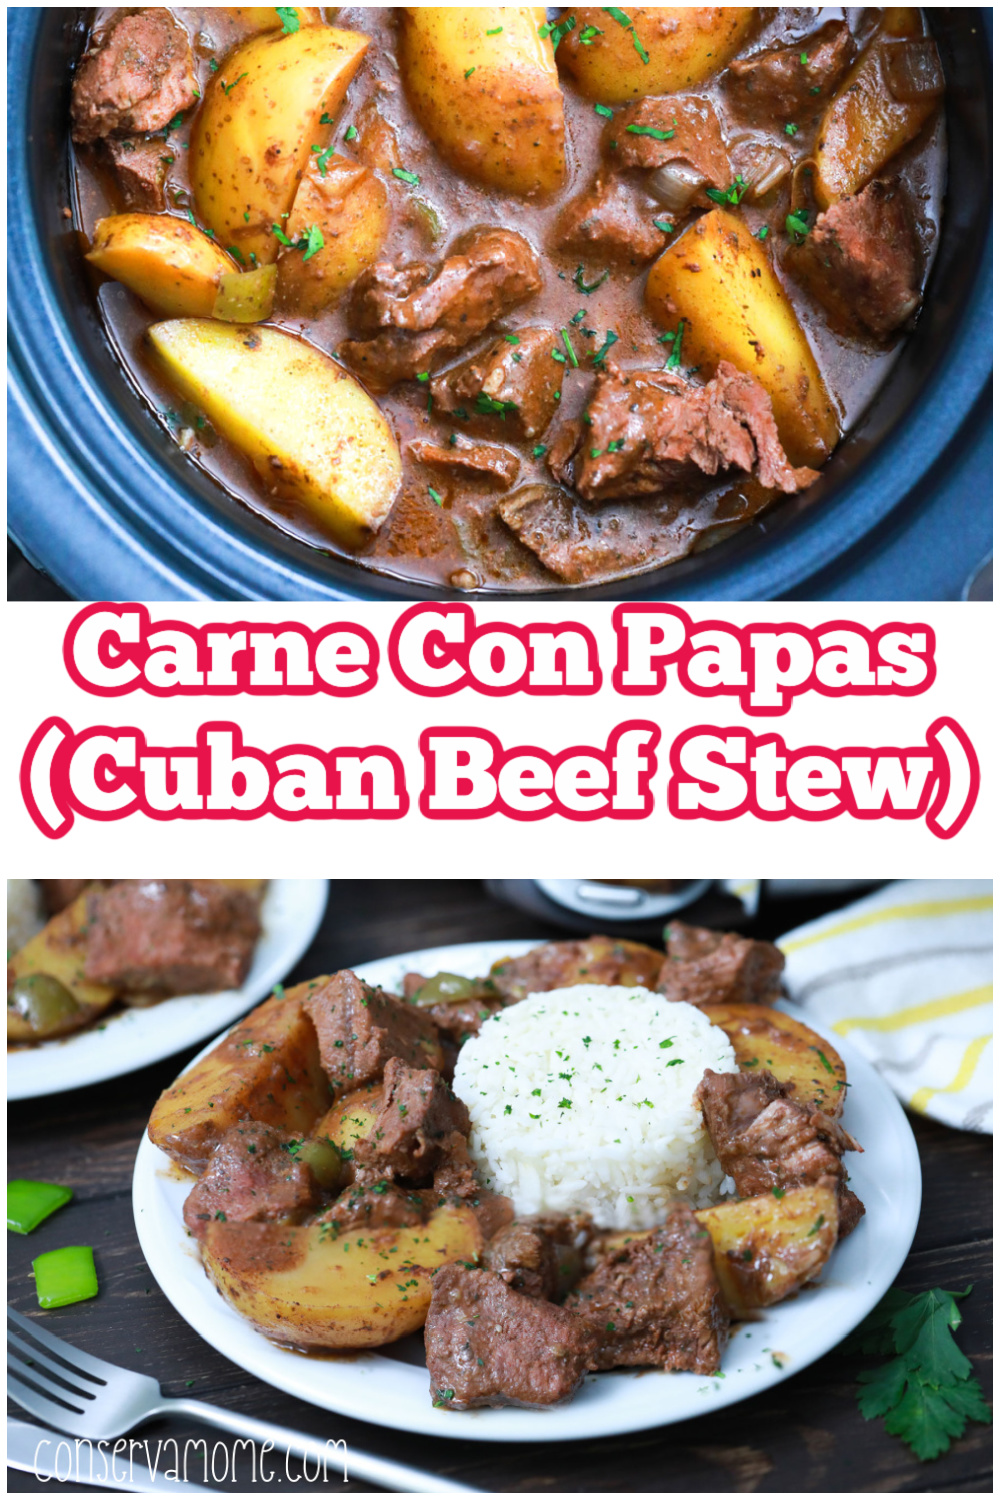 Carne Con Papas - Traditional Cuban Beef Stew